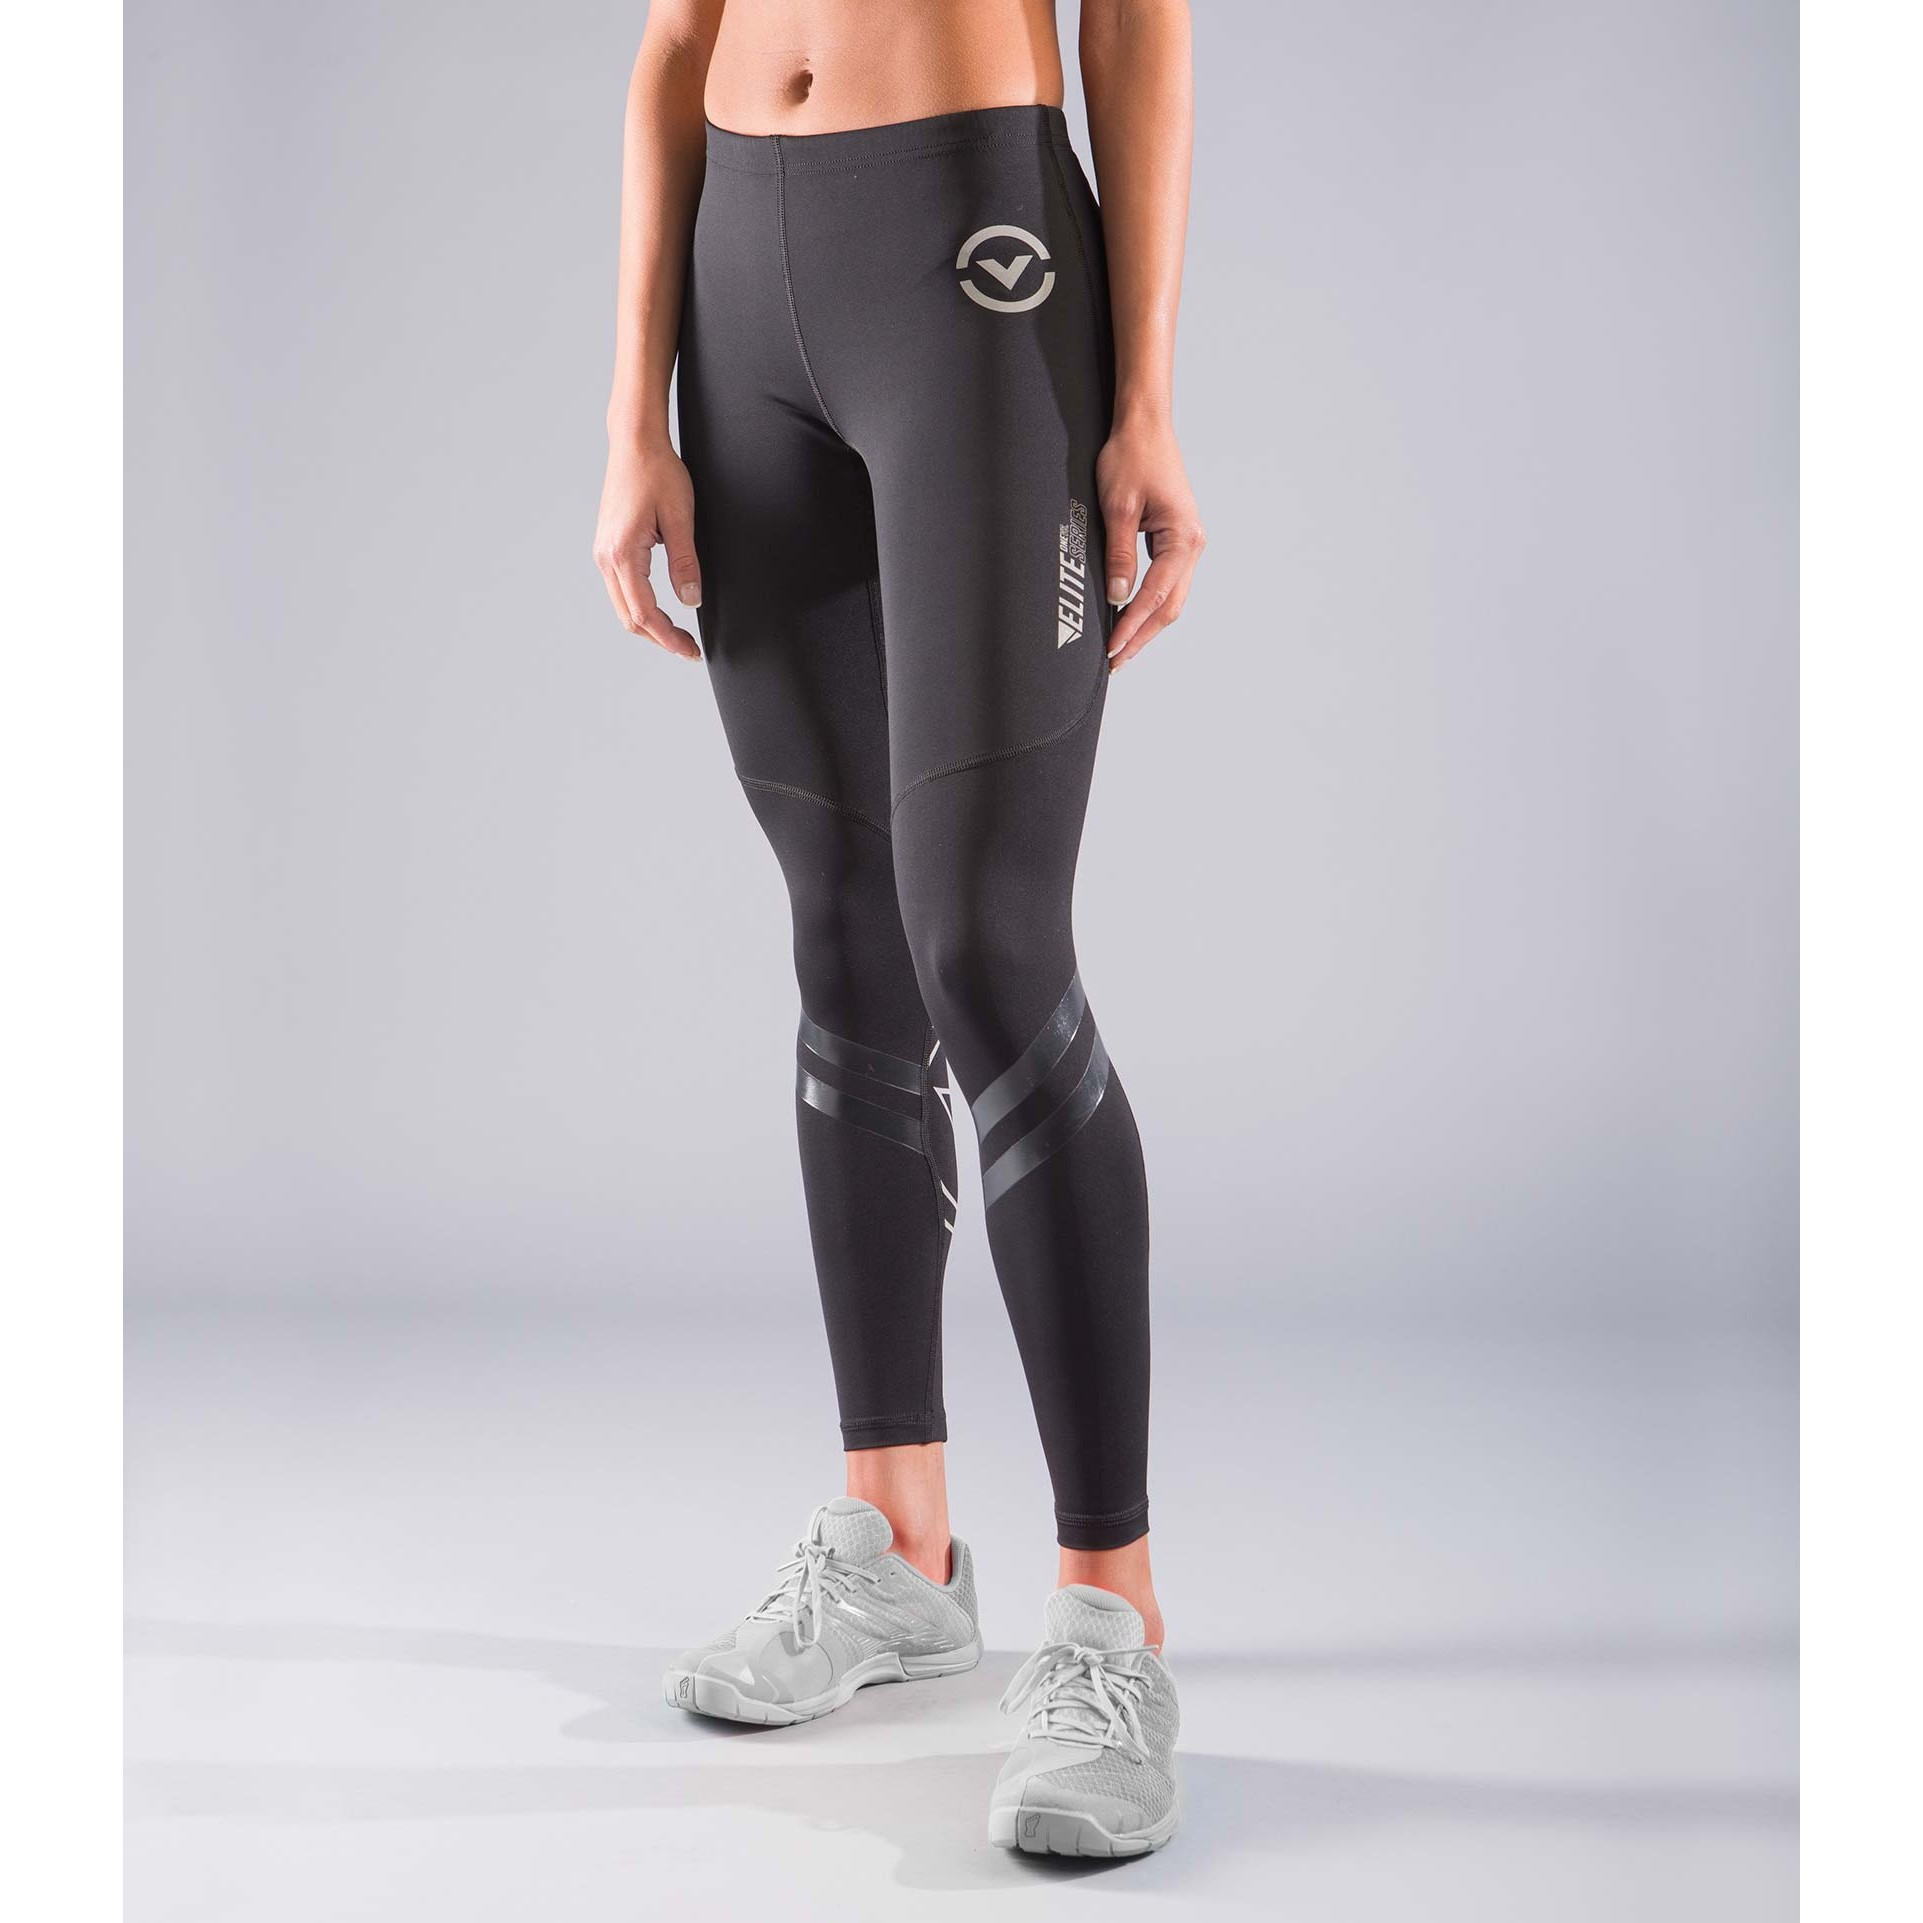 Wonderful New High Value Cartwheel Offer For 50% Off C9 By Champion Power Core Compression Pants For Women Valid Today 110 Only Stack This With The $5 Off $30 Or $10 Off $50 C9 Printable Coupons These Coupons Are Also Valid Through Today Only